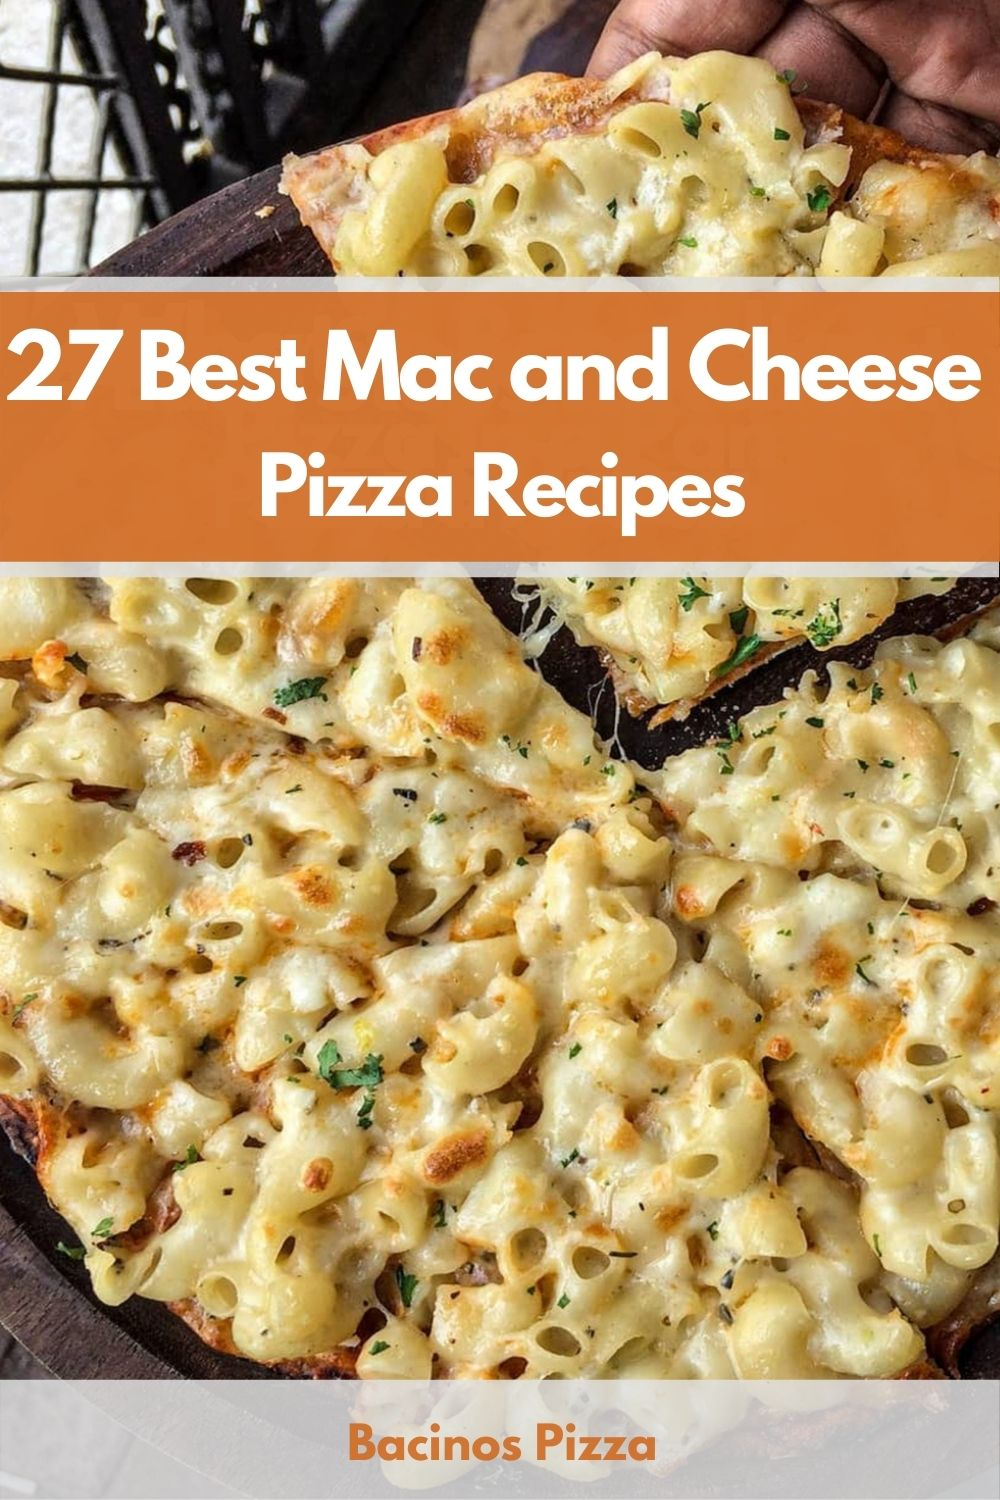 27 Best Mac and Cheese Pizza Recipes pin